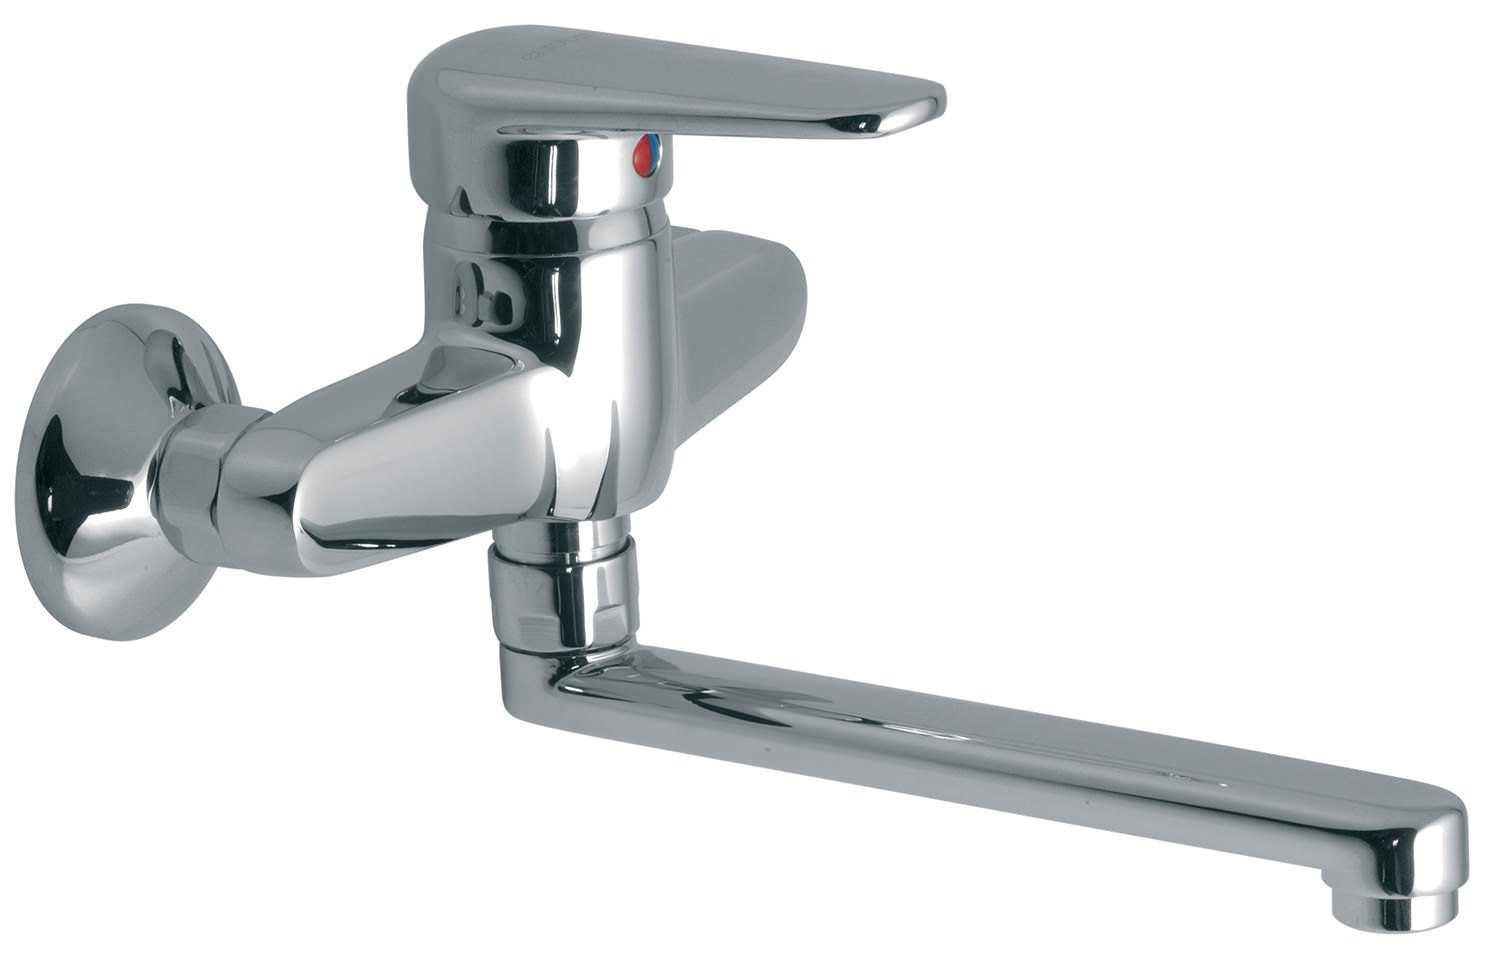 Vado Chelsea Wall Mounted Exposed Sink Mixer Tap